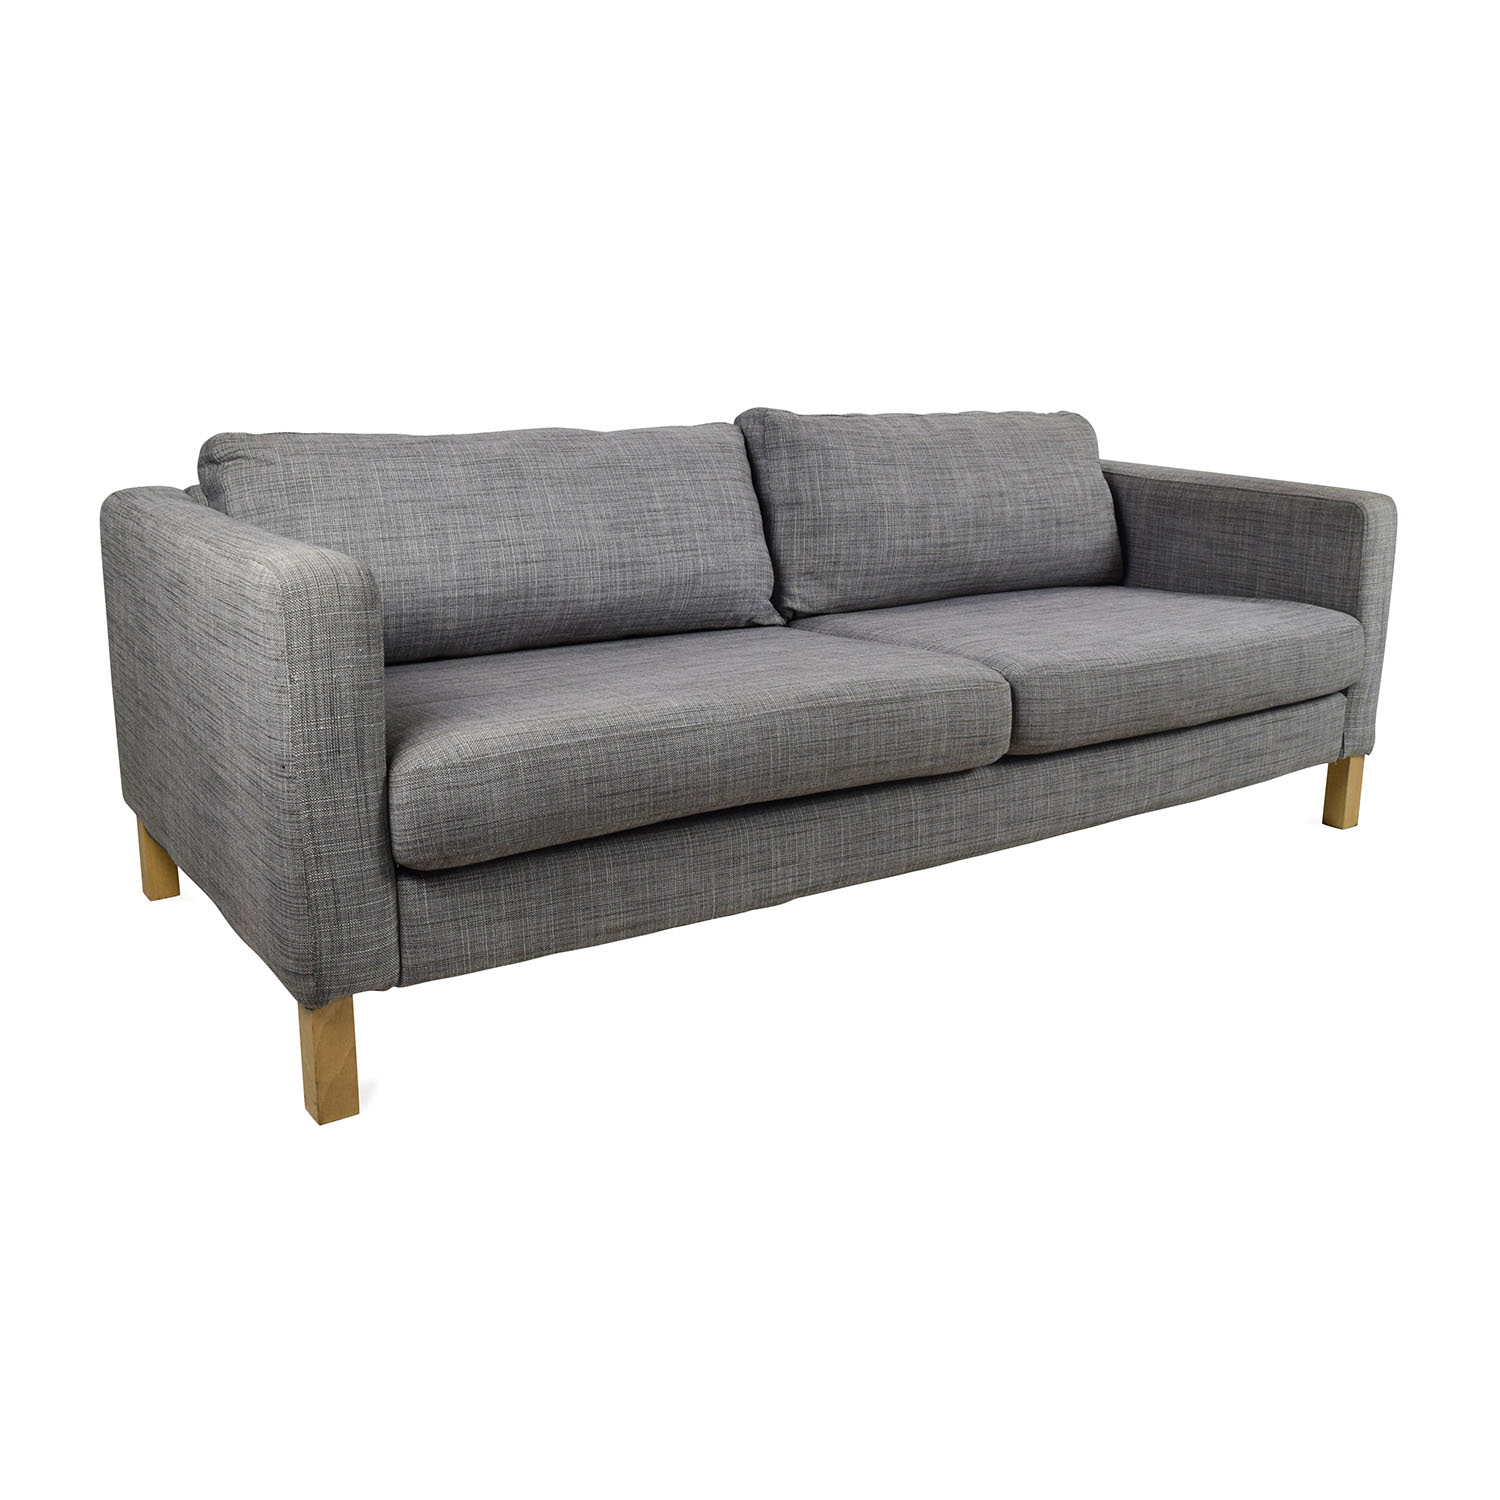 50 off ikea ikea karlstad sofa sofas for Ikea gray sofa